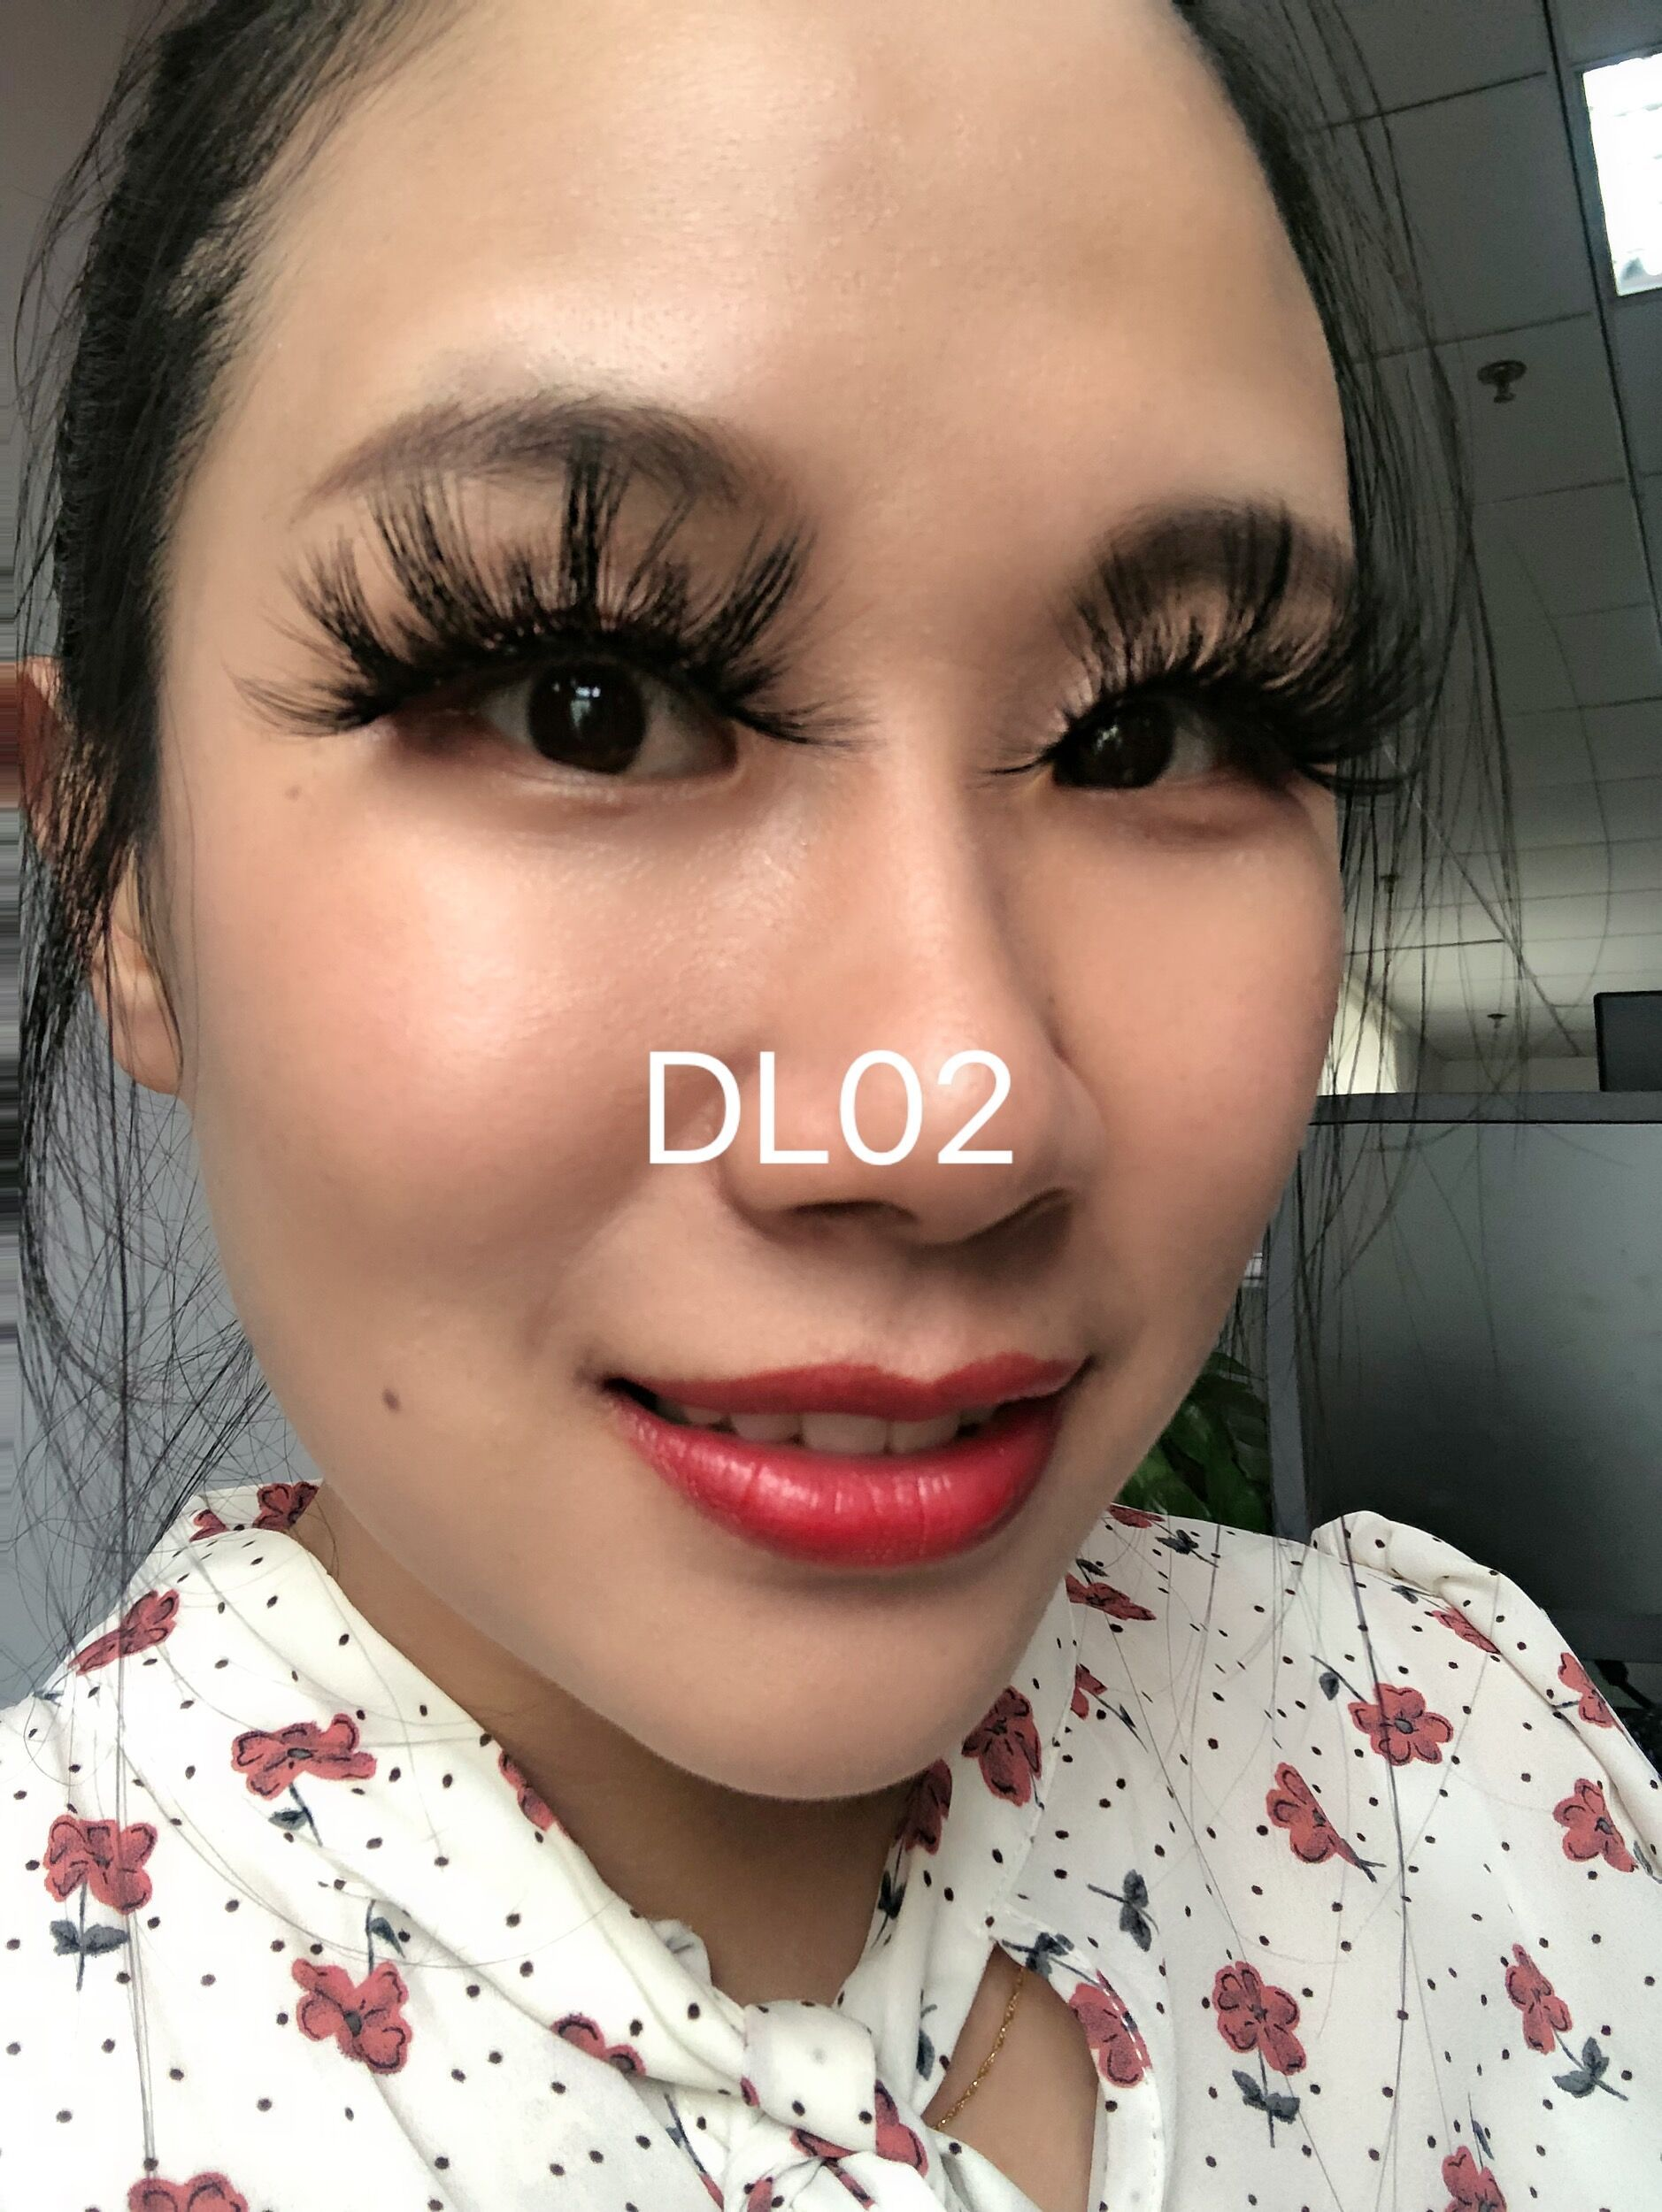 Wholesale Beauty Vendors 25mm Lashes Wholesale Mink Lashes Vendors Usa 25mm Mink